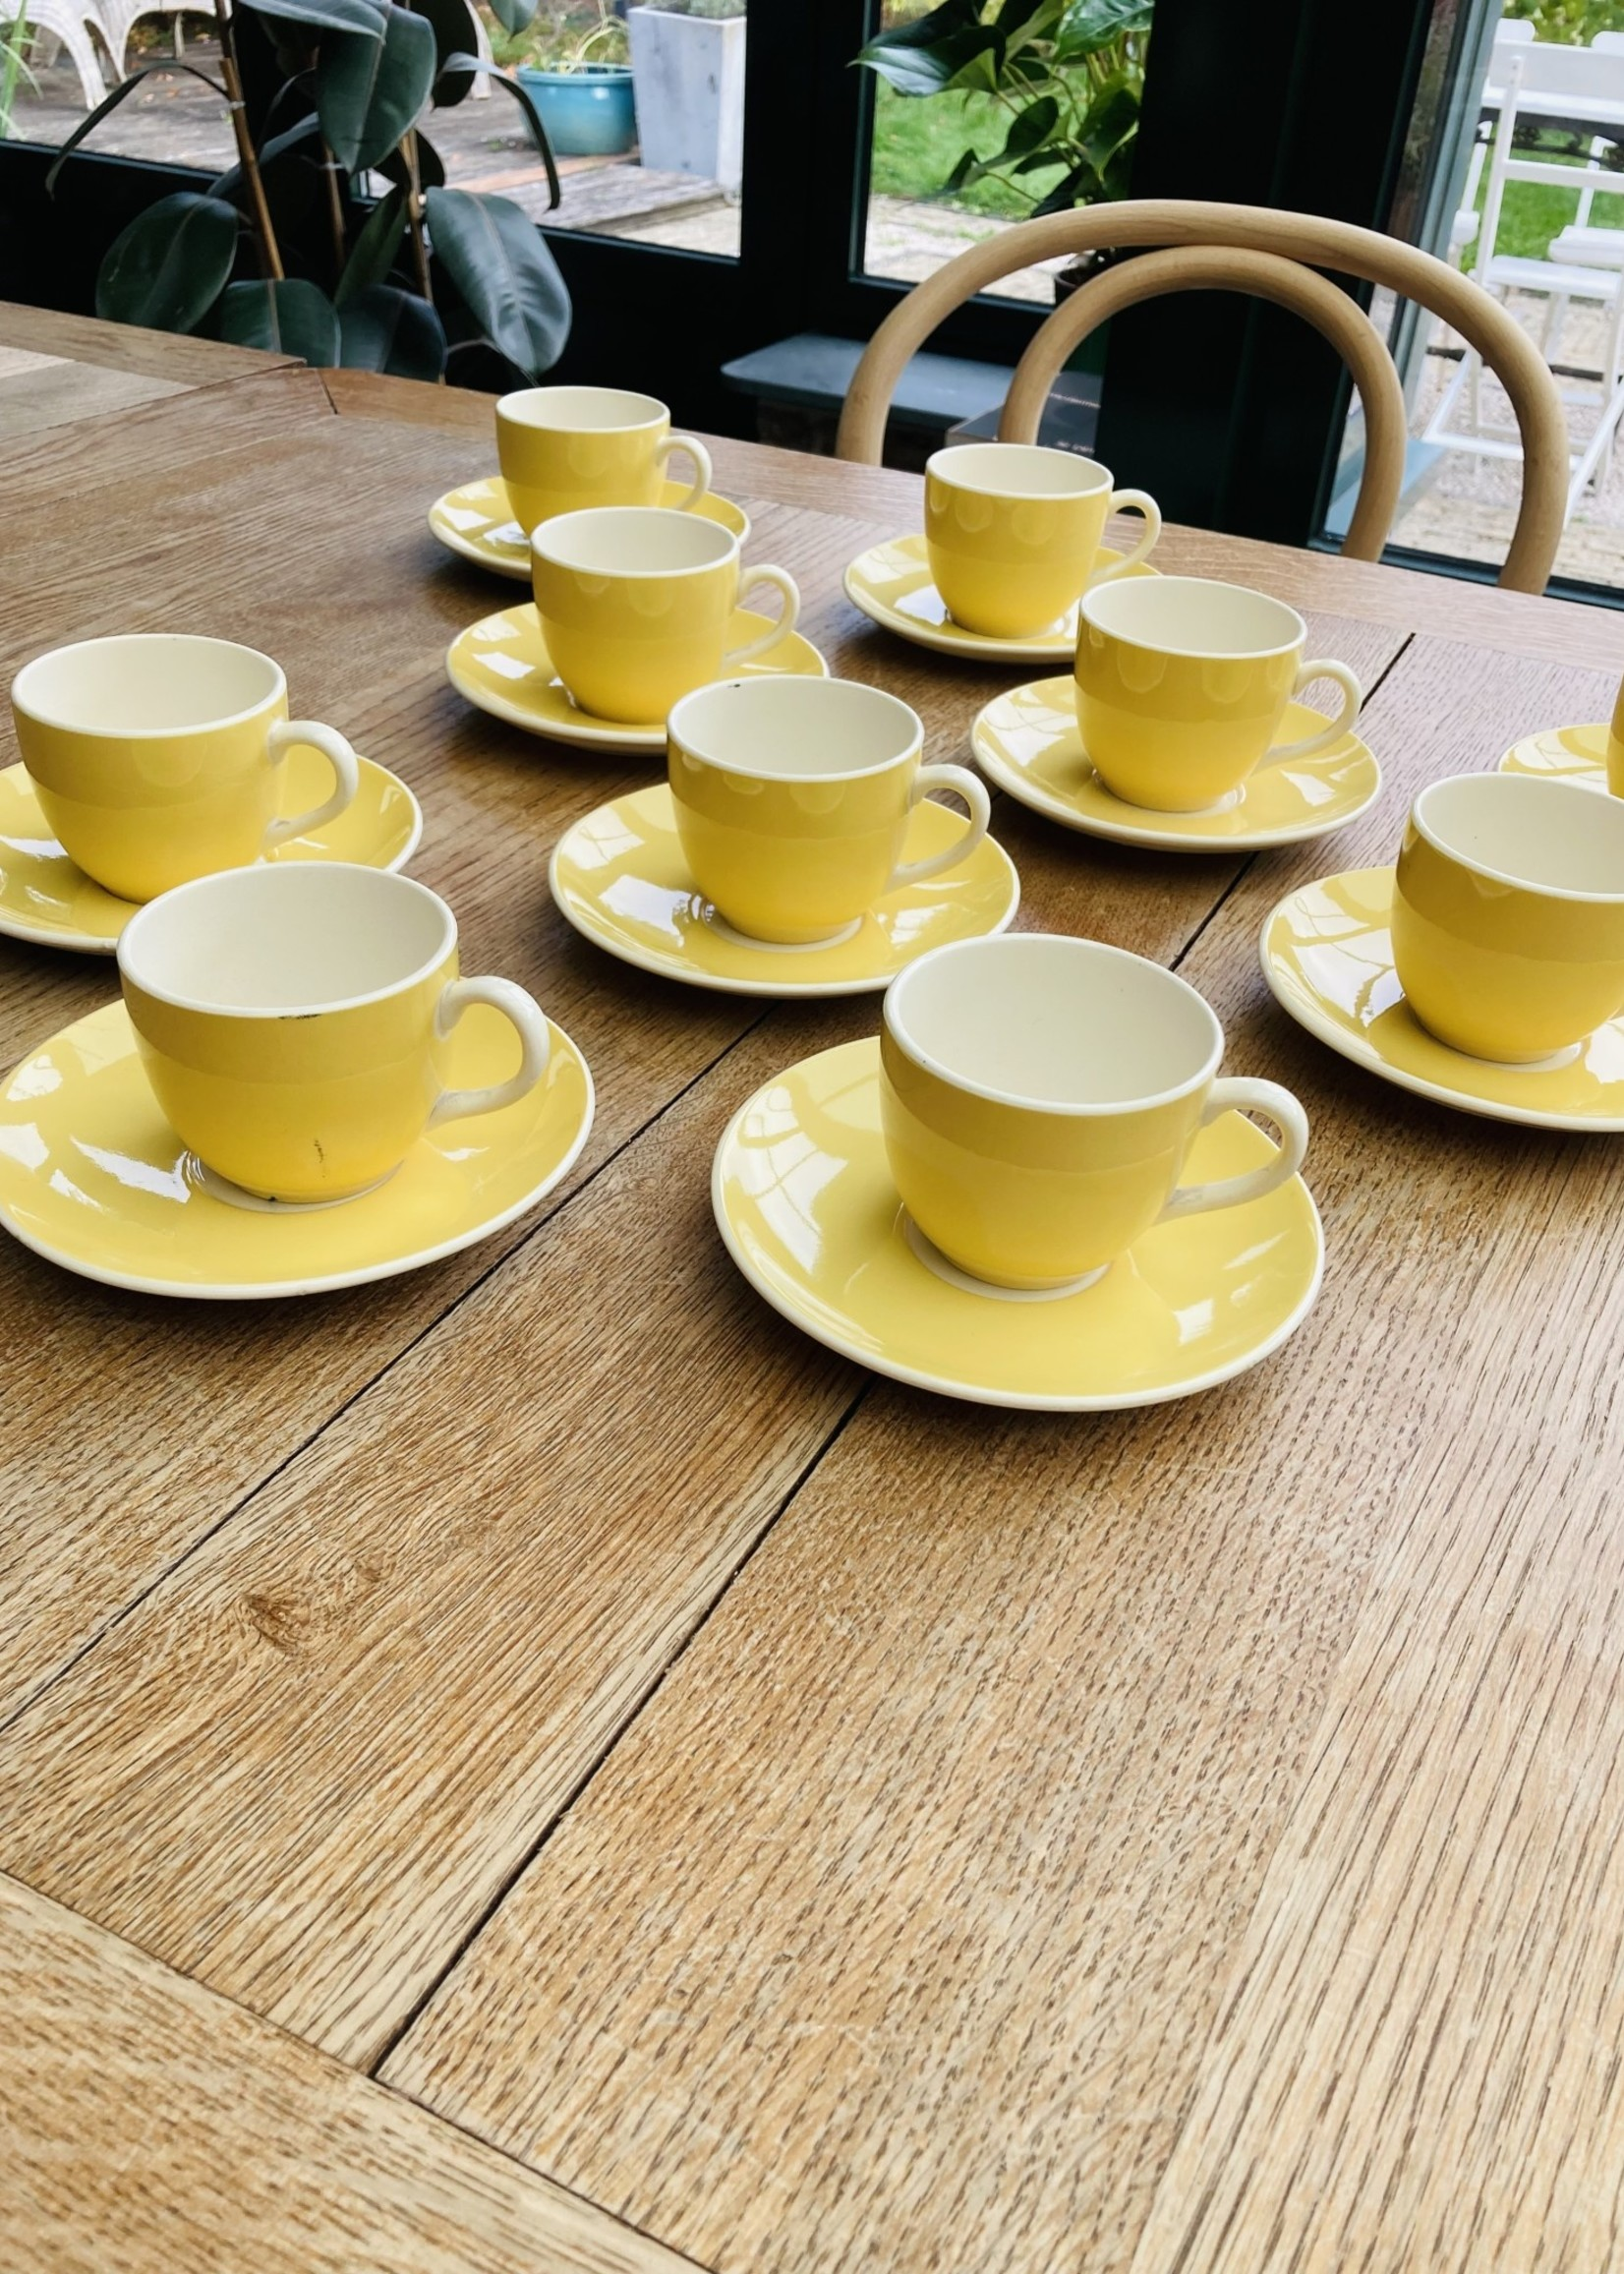 Mocca cup and plate from Villeroy and Boch light yellow